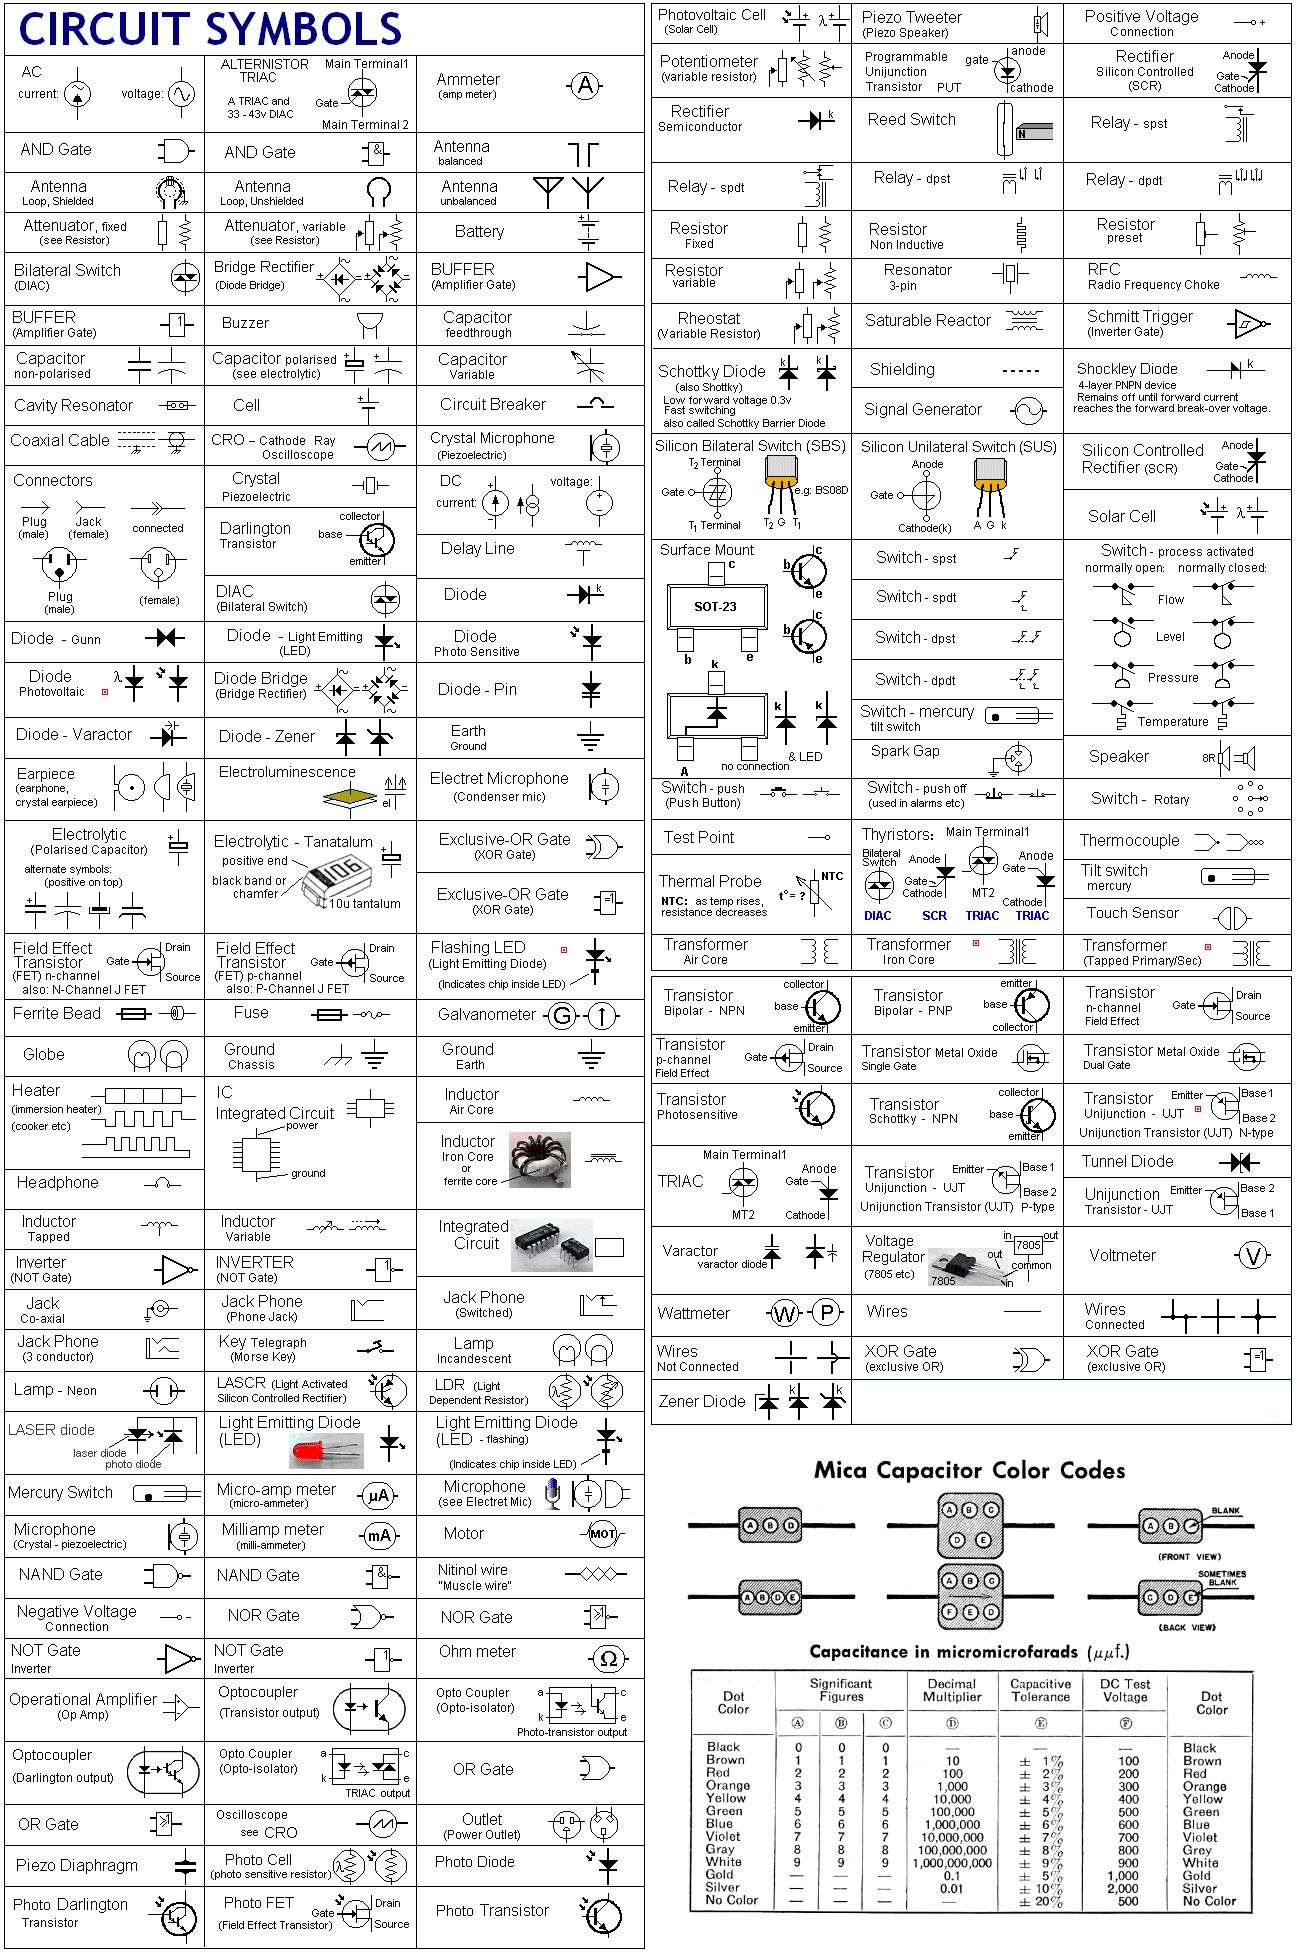 Best 25 Electrical symbols ideas on Pinterest | Electrical Engineering, Electrical diagram and